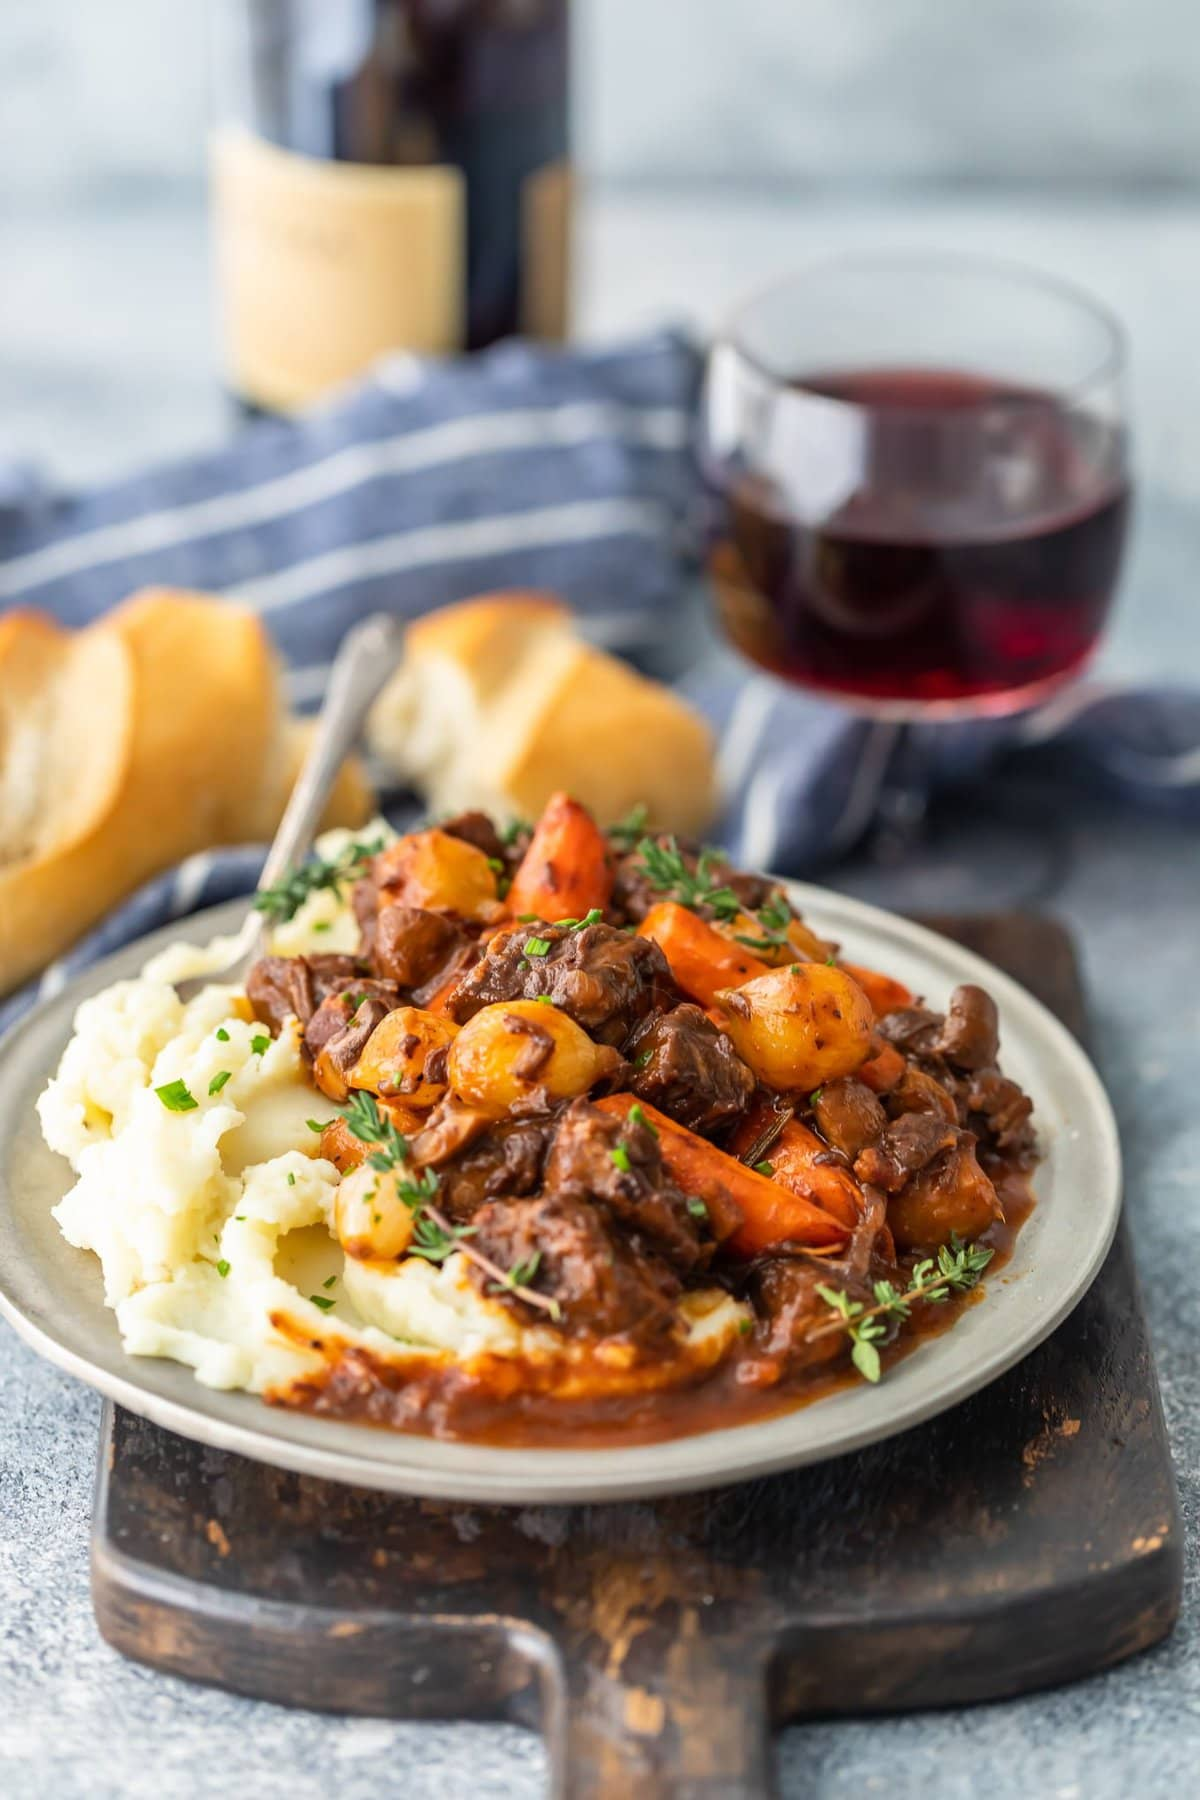 a plate of boeuf bourguignon next to a glass of red wine